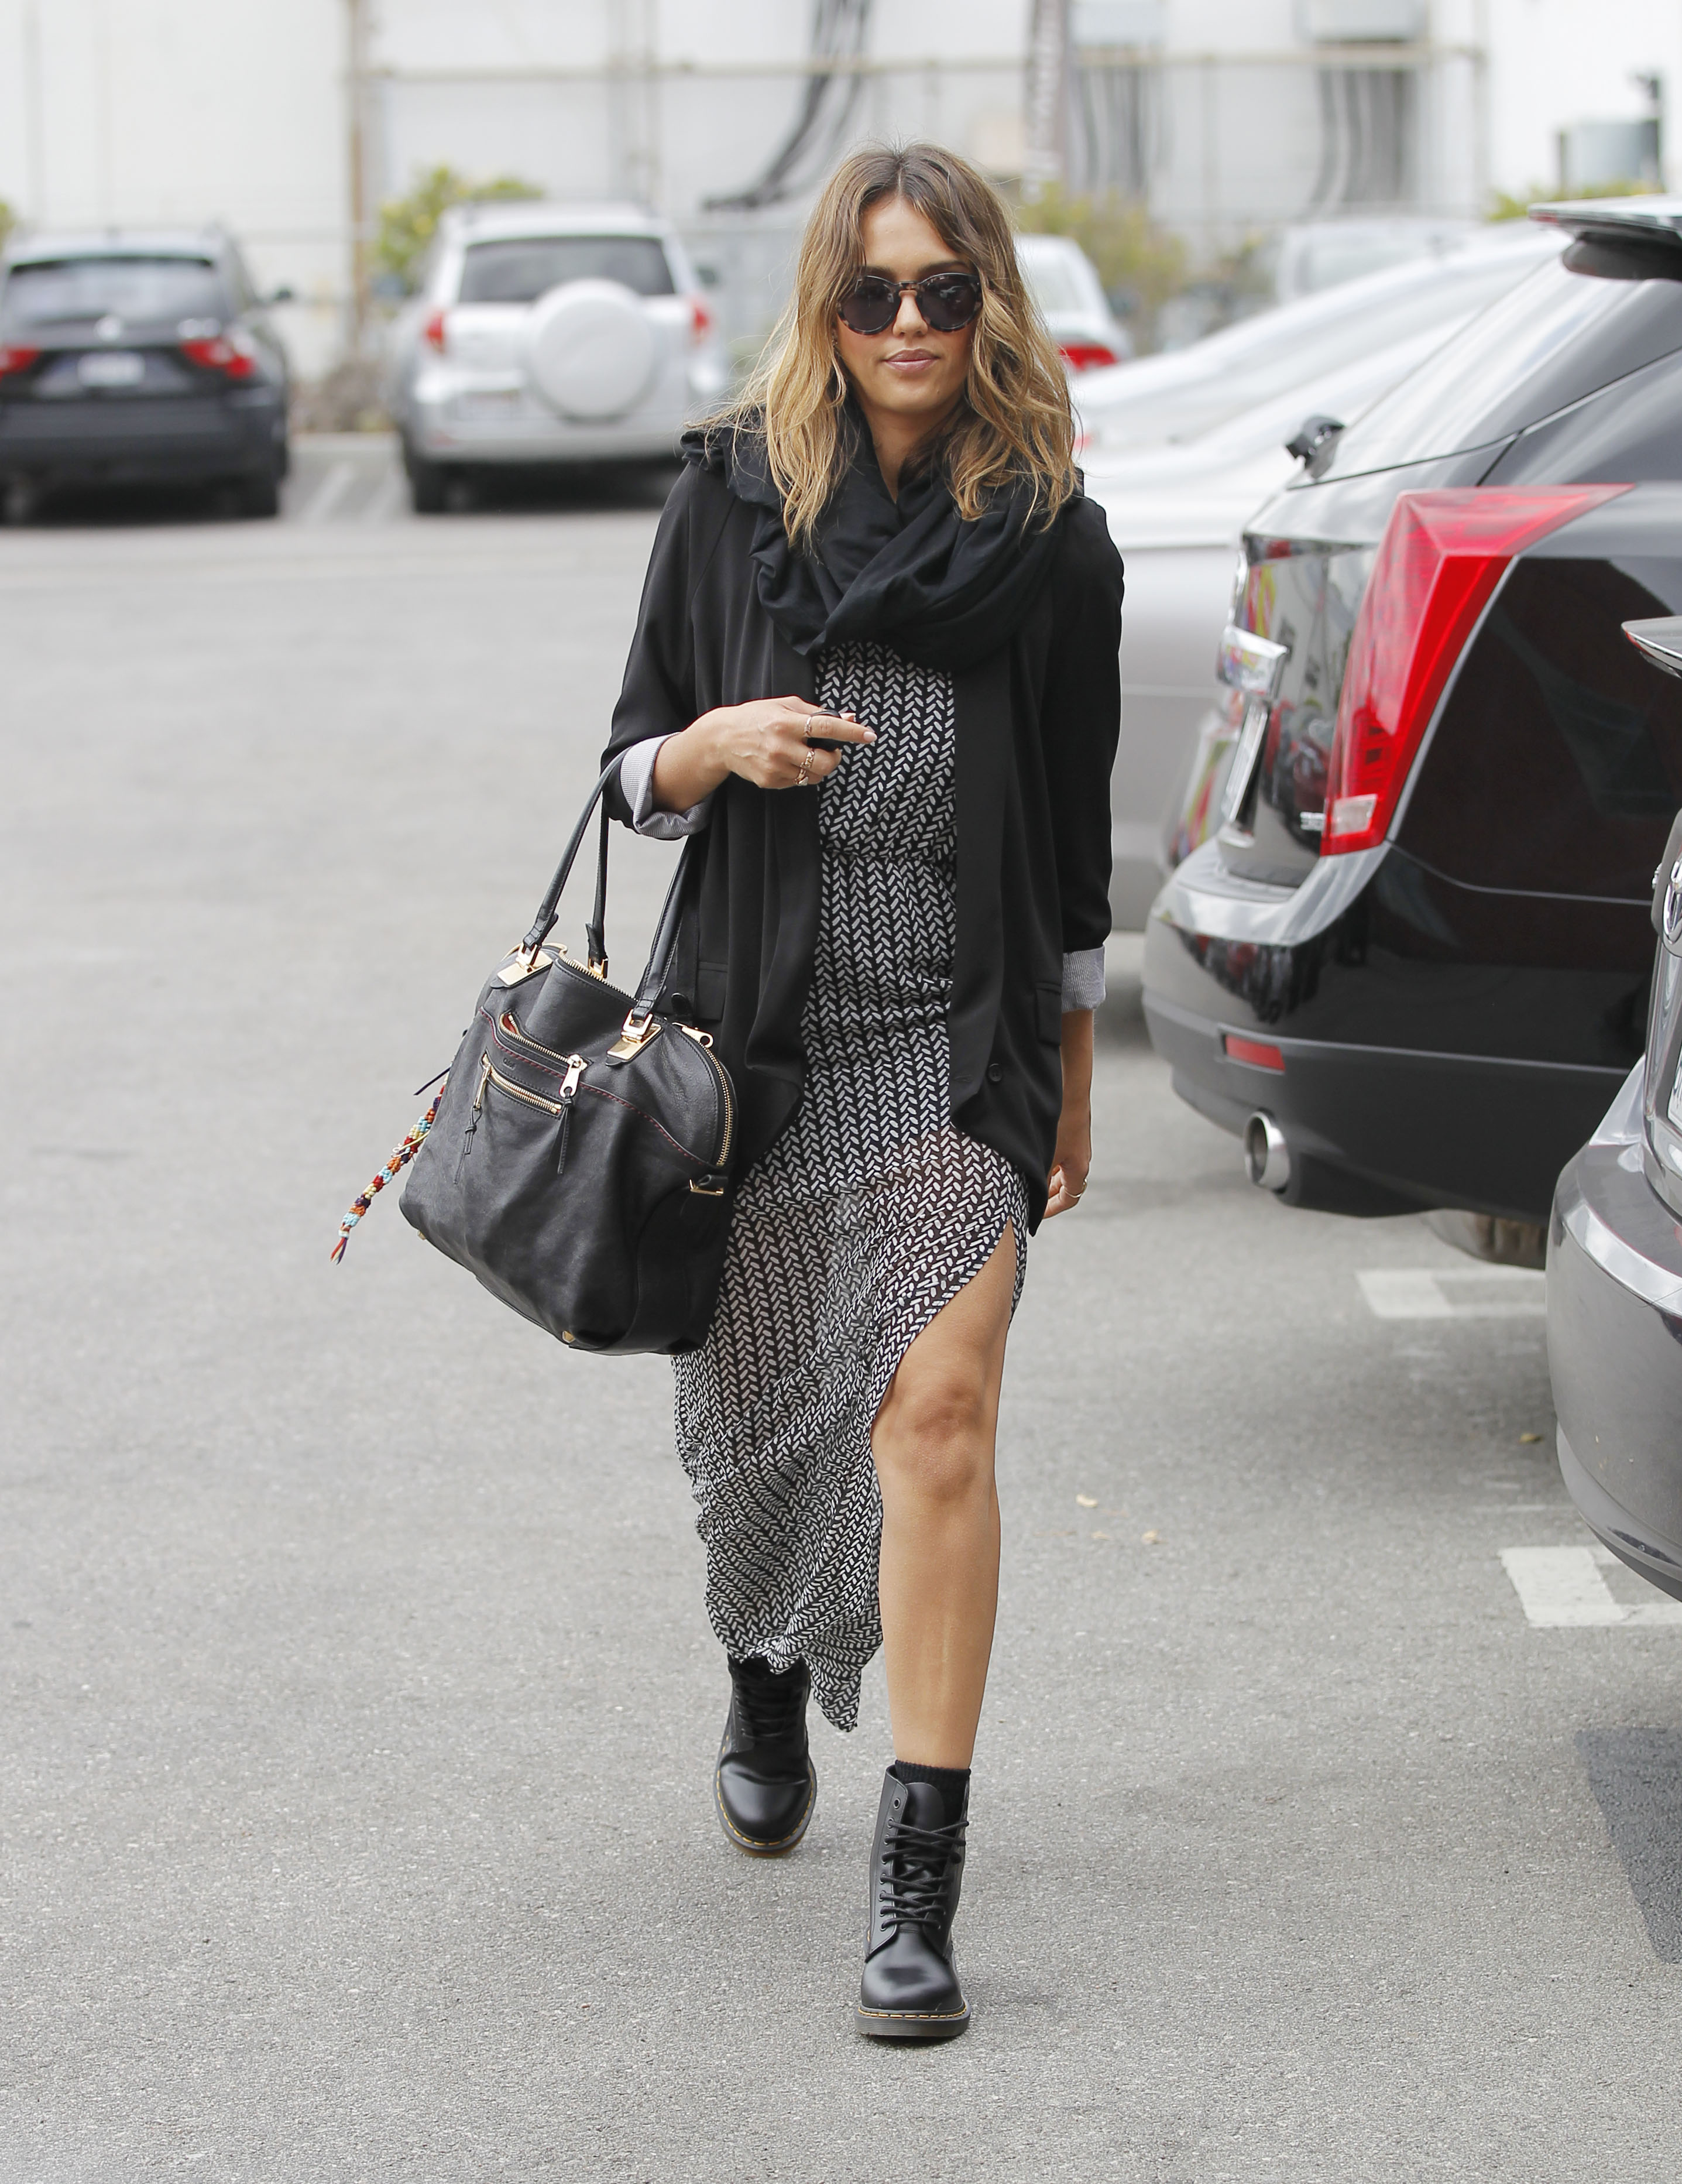 Black dress and cardigan - Jessica Alba Maxi Dress Cardigan Scarf Doc Martens Combat Boots Fall Work Outfit Grey Black